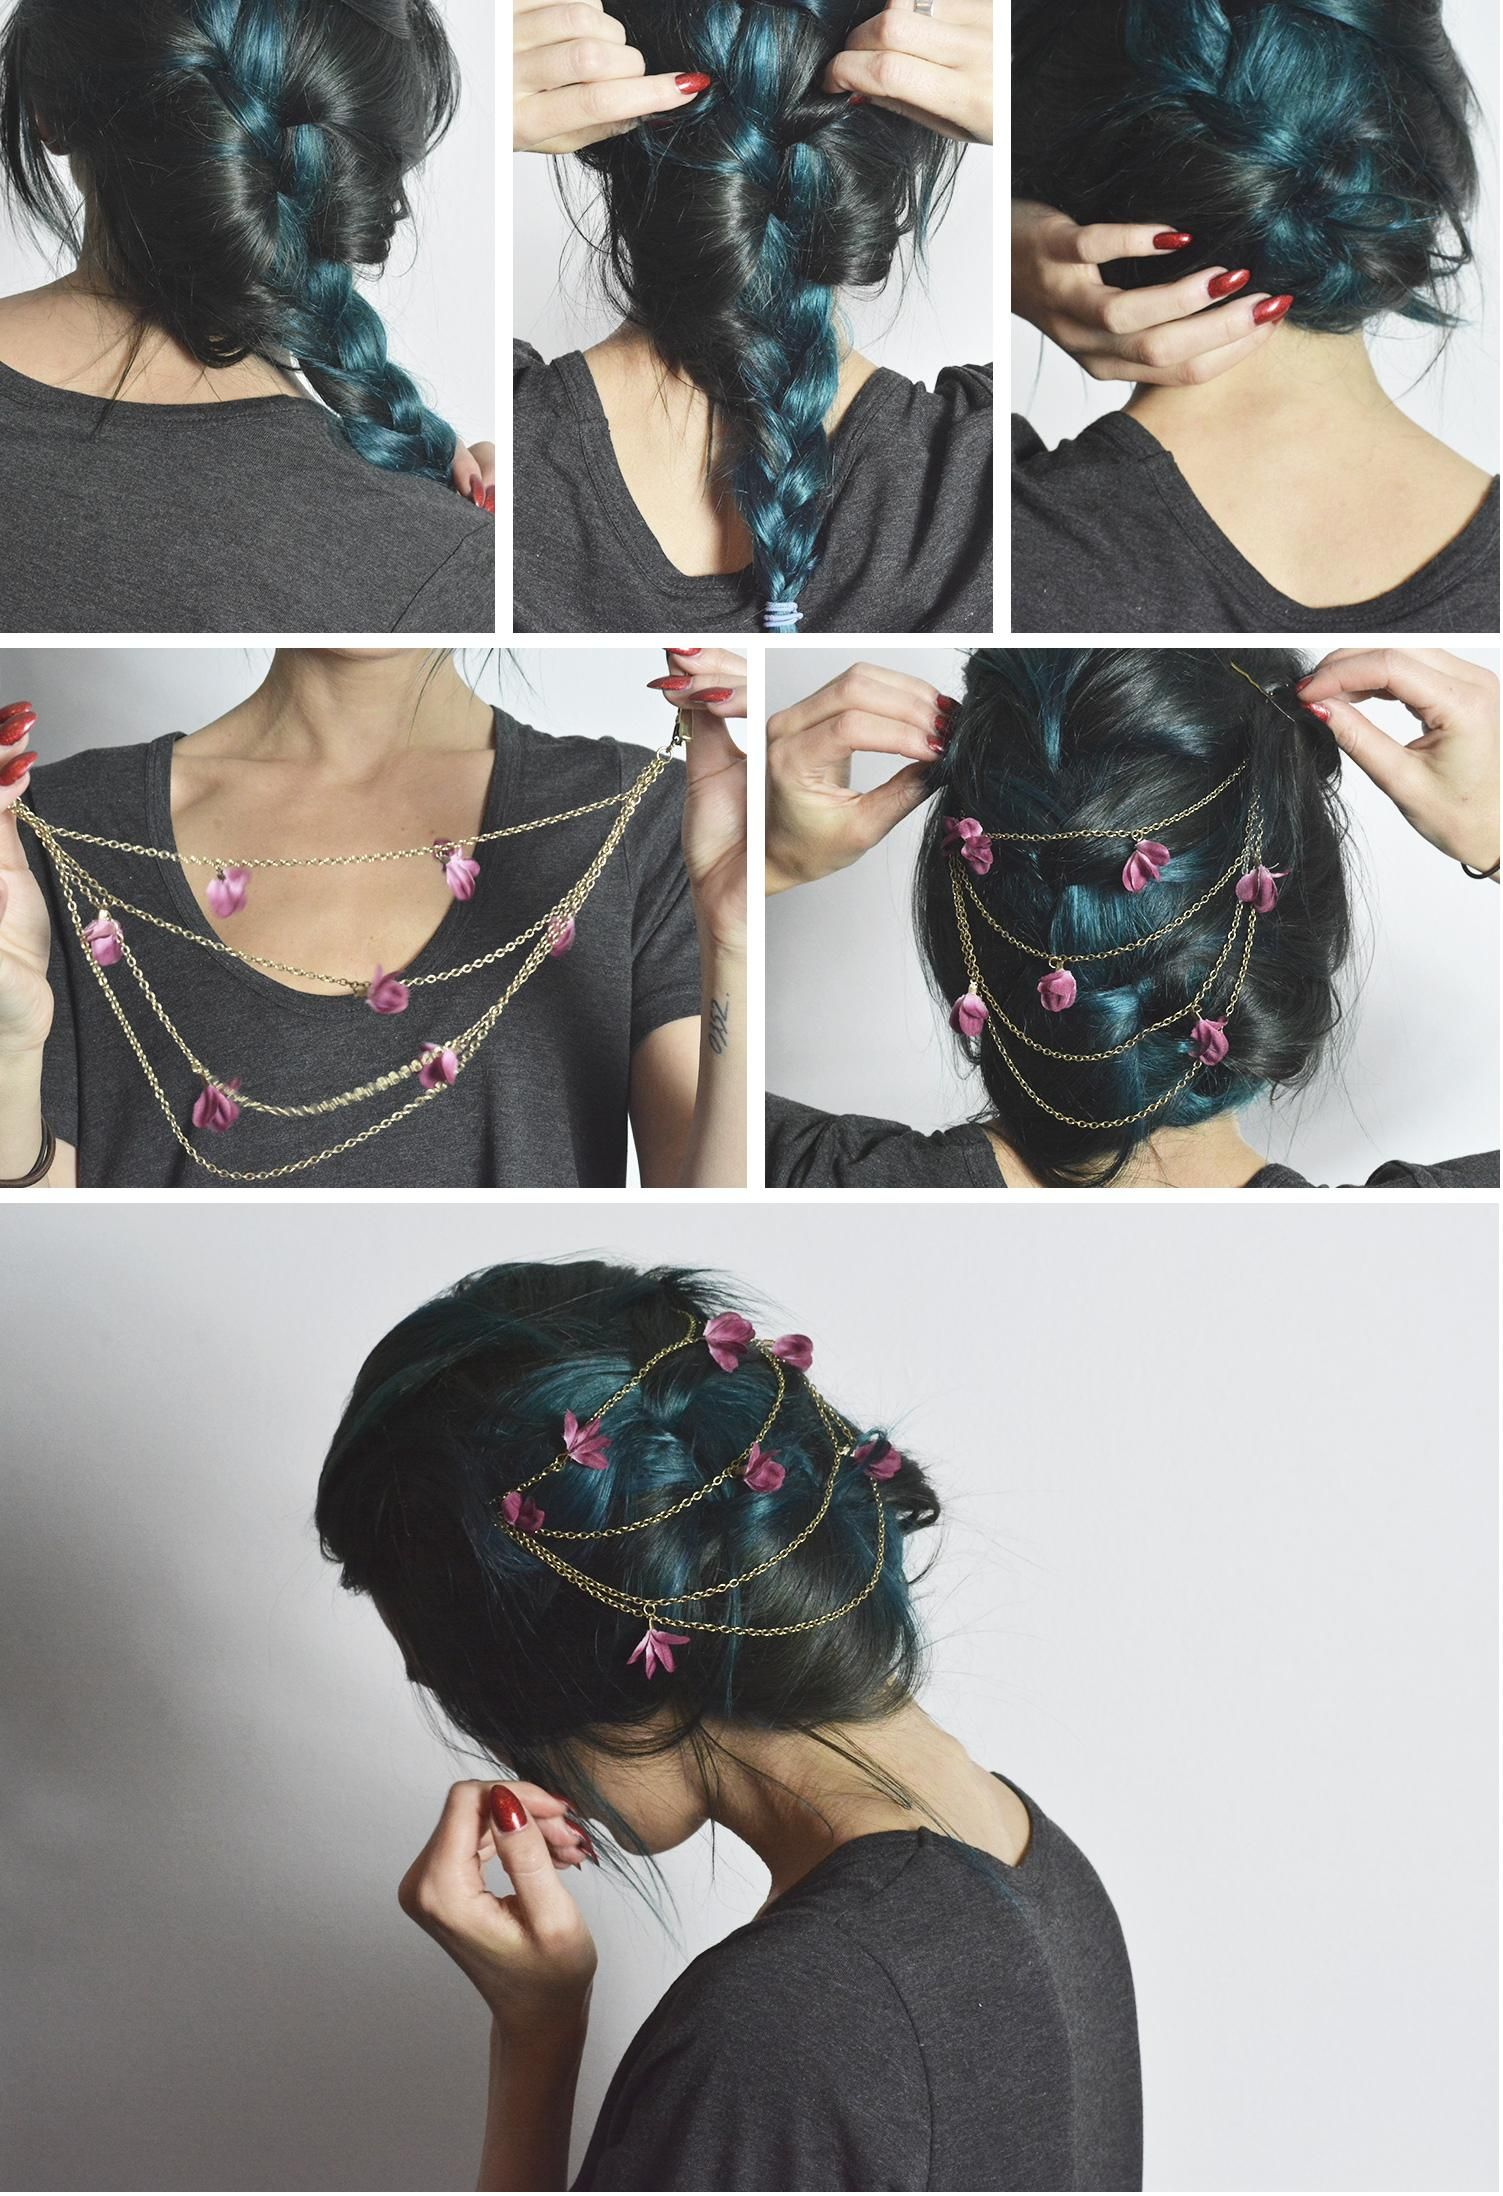 TUTORIAL | EASY ROMANTIC UPDO from Linda Hallberg: /This updo is as simple as it is romantic! Step 1: Do a messy french braid and tie it with a hair ribbon Step 2: Make the braid even more messy  Step 3: Roll the braid and attach it with pins under itself.  Step 4: Find a nice head piece, or a necklace that you can put in your hair . I found this head piece in a store called Claire's . They had soooo much nice things.  Step 5: Attach the piece and hide the larger pins (if any) with your hair